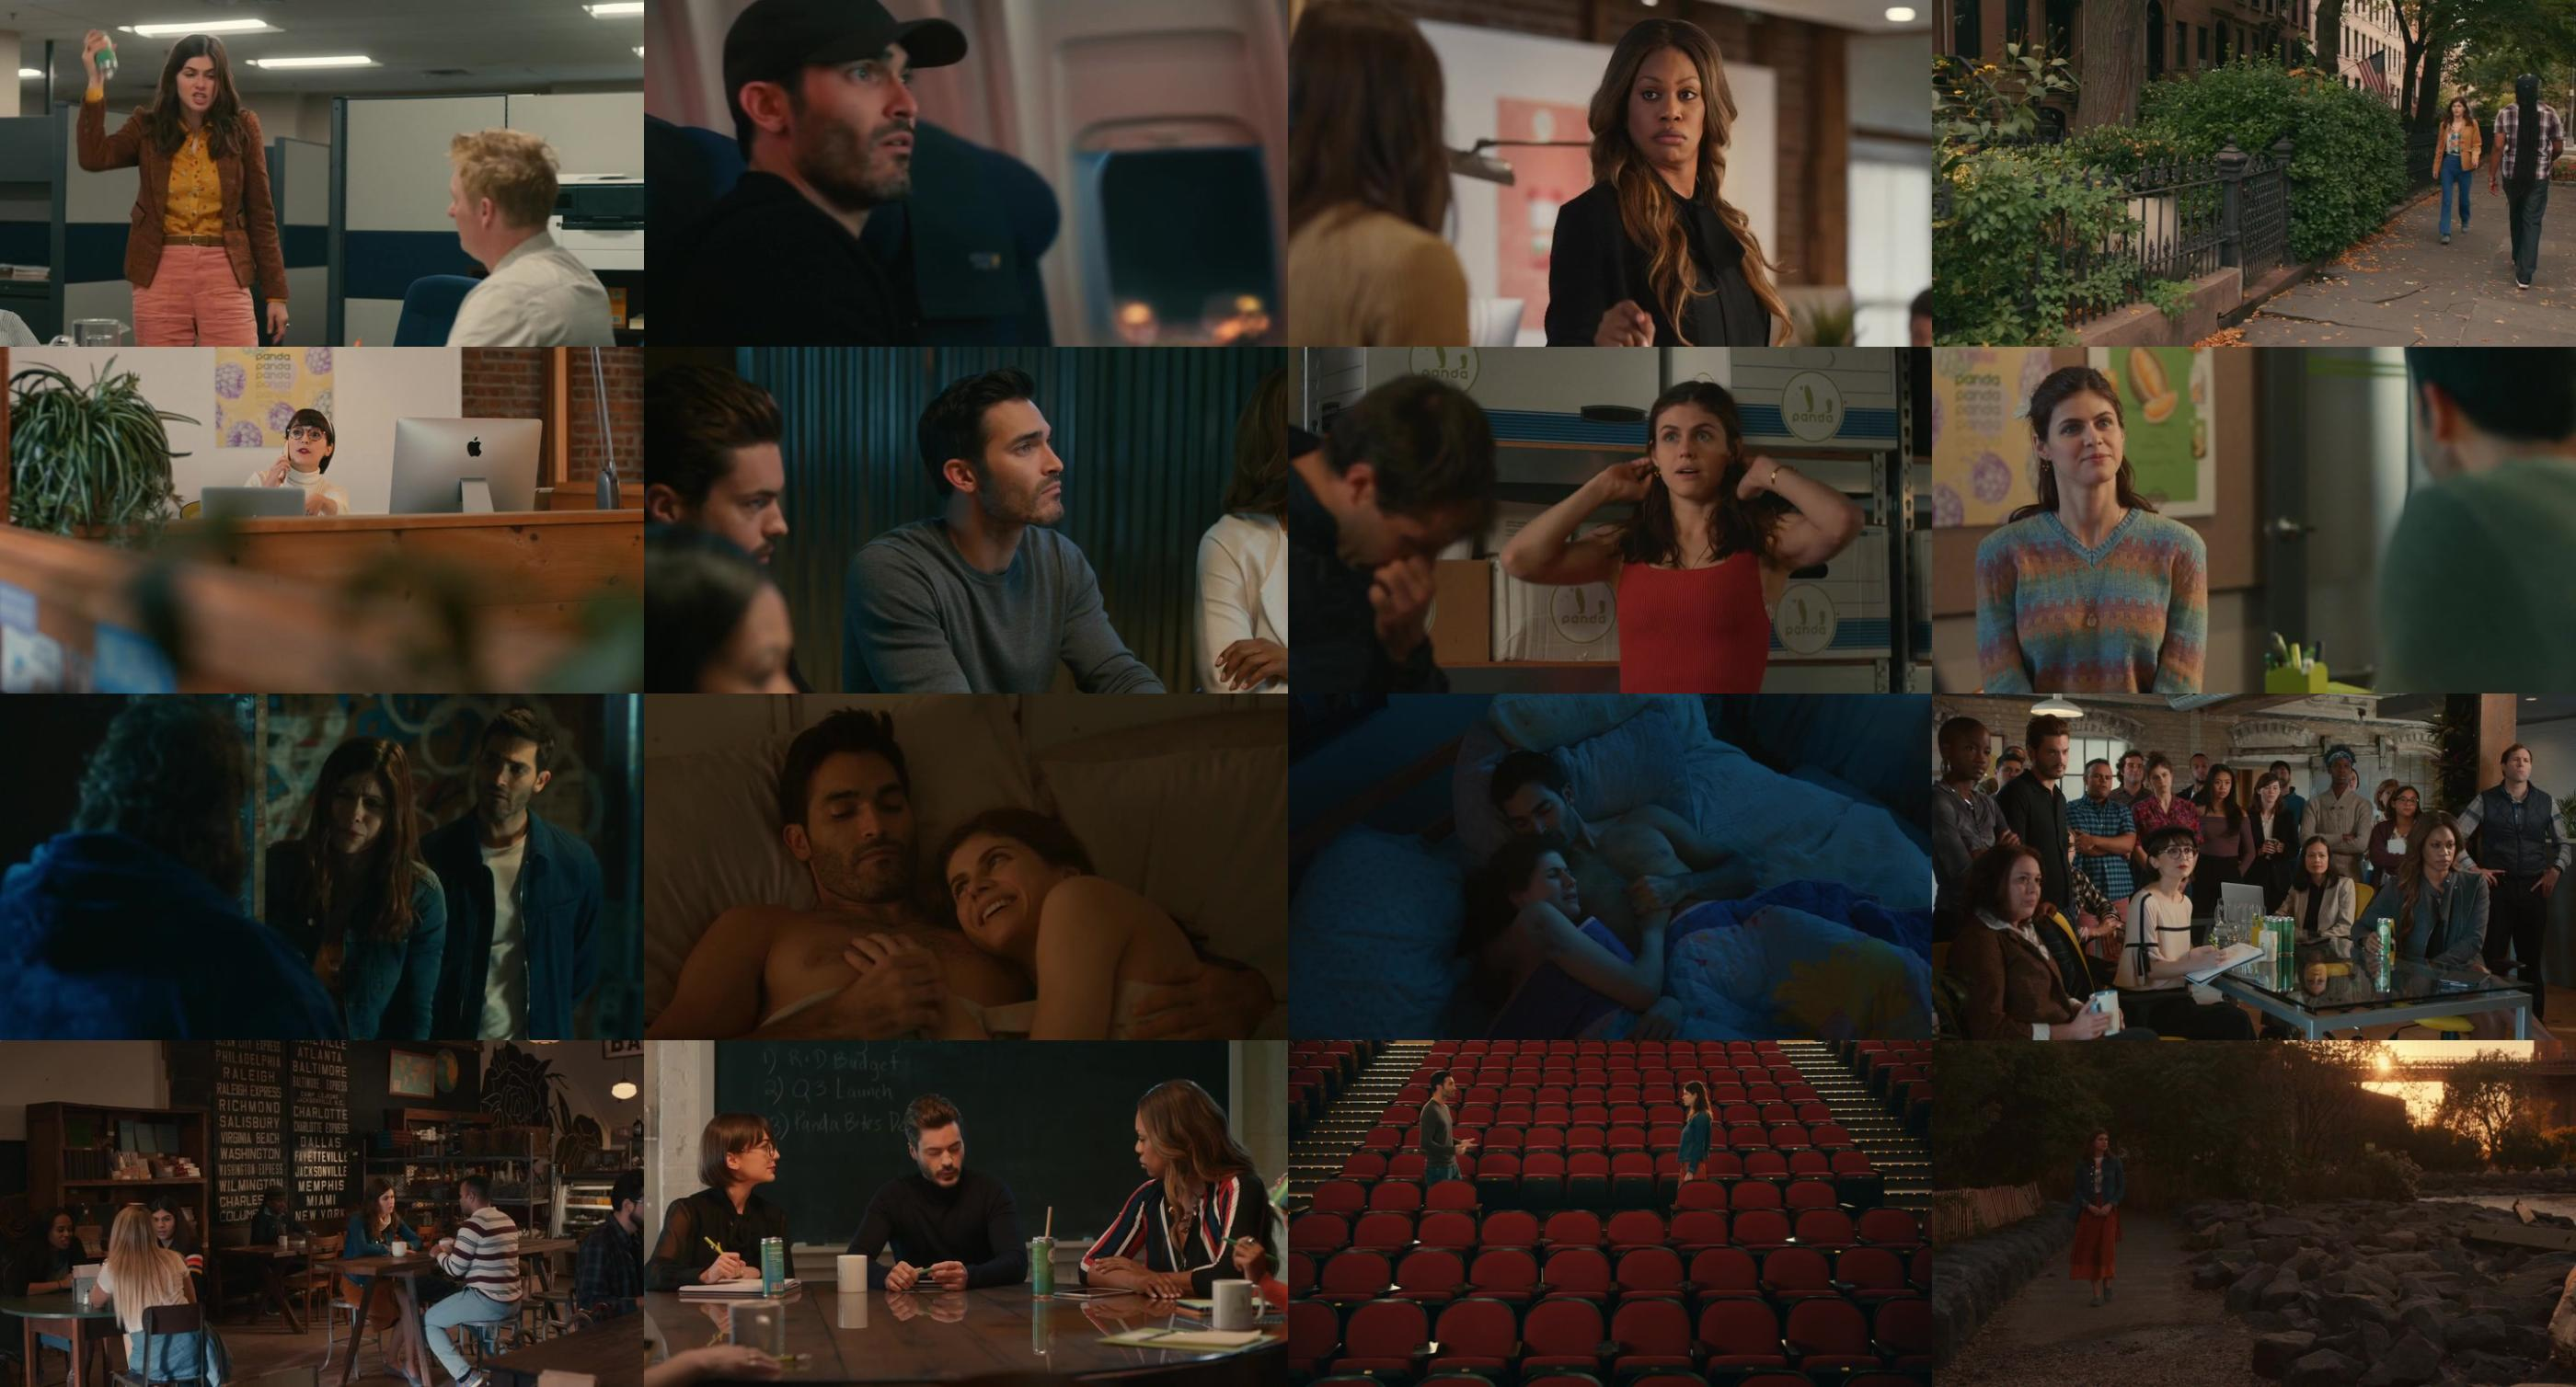 Can You Keep A Secret 2019 HDRip XviD AC3-EVO